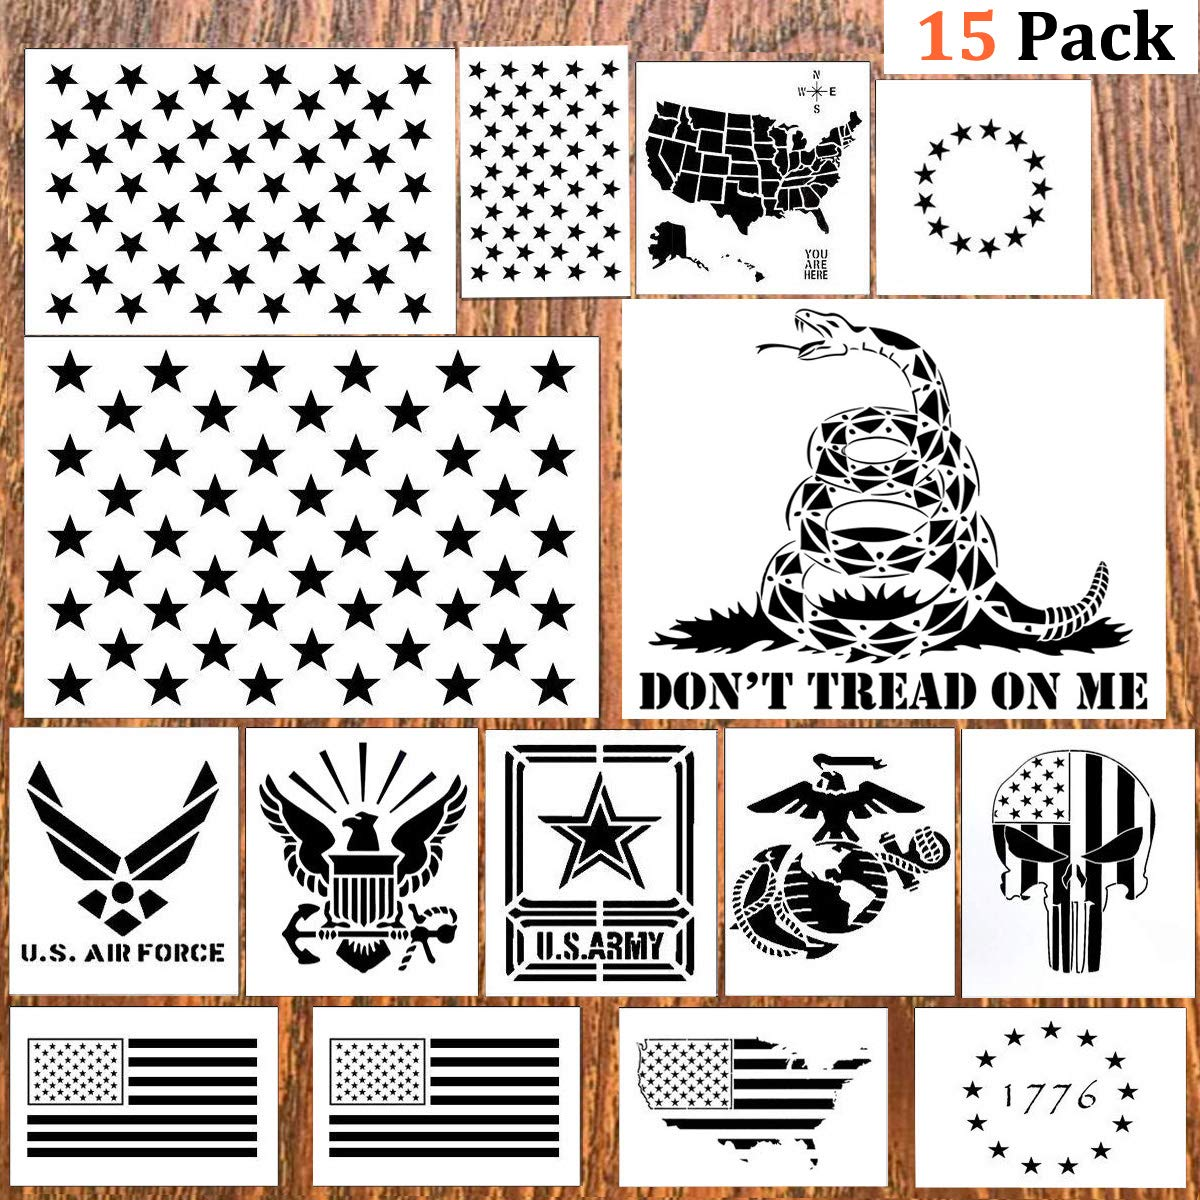 DmHirmg 15pcs American Flag Stencil Plastic Stencil Template(Map Flag Marine Corps Army Air Force) for Planner/Notebook/Diary/Scrapbook/Graffiti/Card, DIY Drawing Painting Craft Projects(15 Pack)